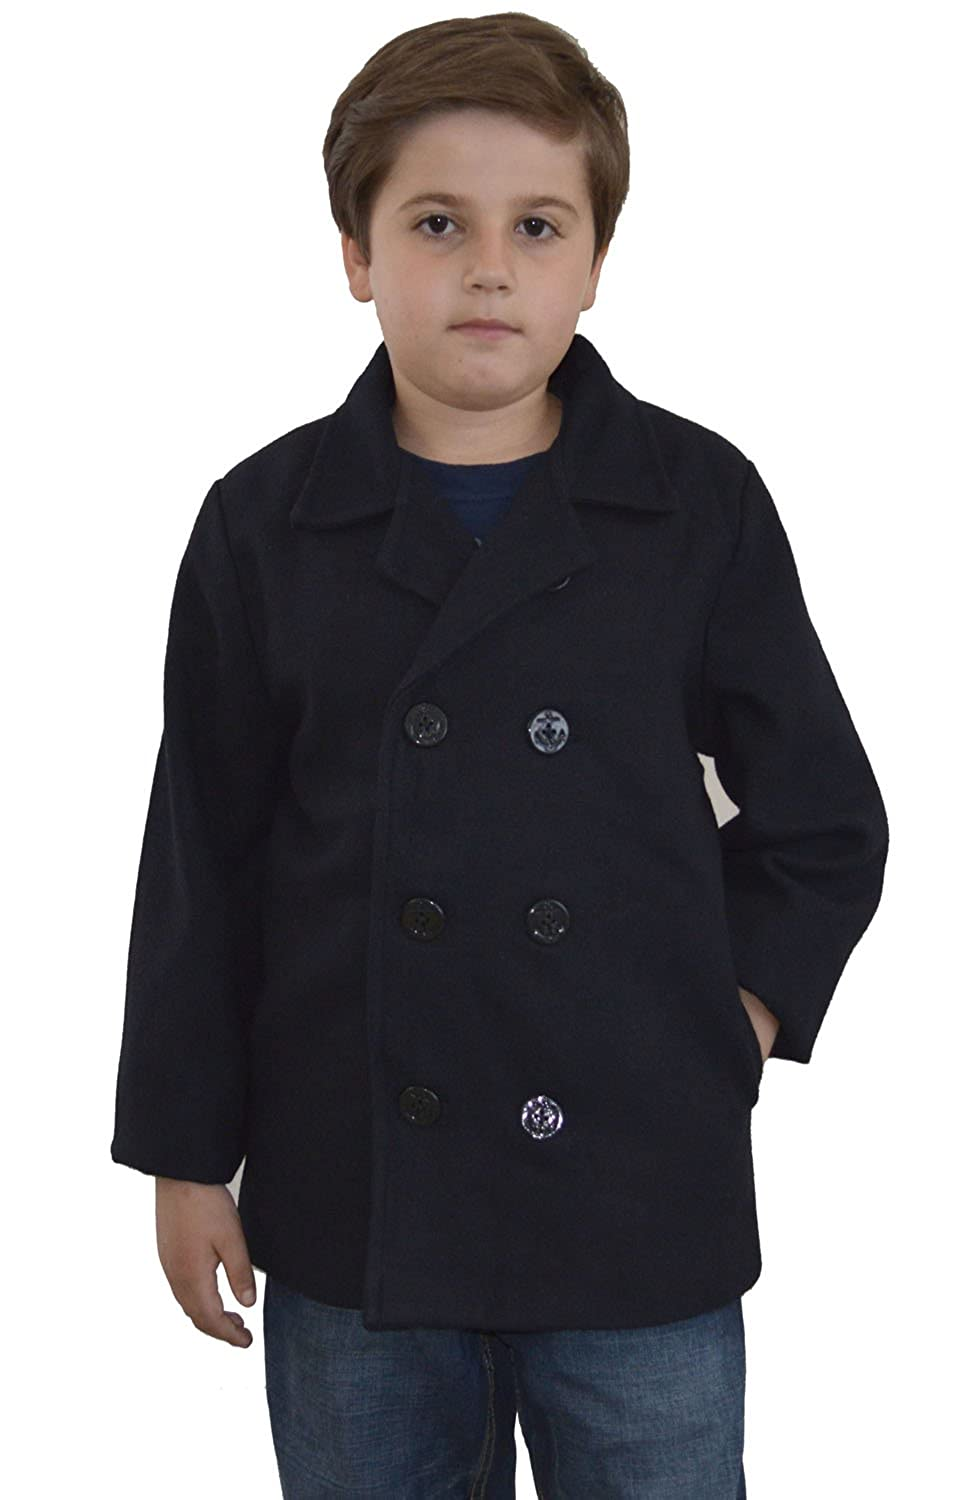 Amazon.com: Johnnie Lene Kids Navy Blue Wool Peacoat Jacket ...